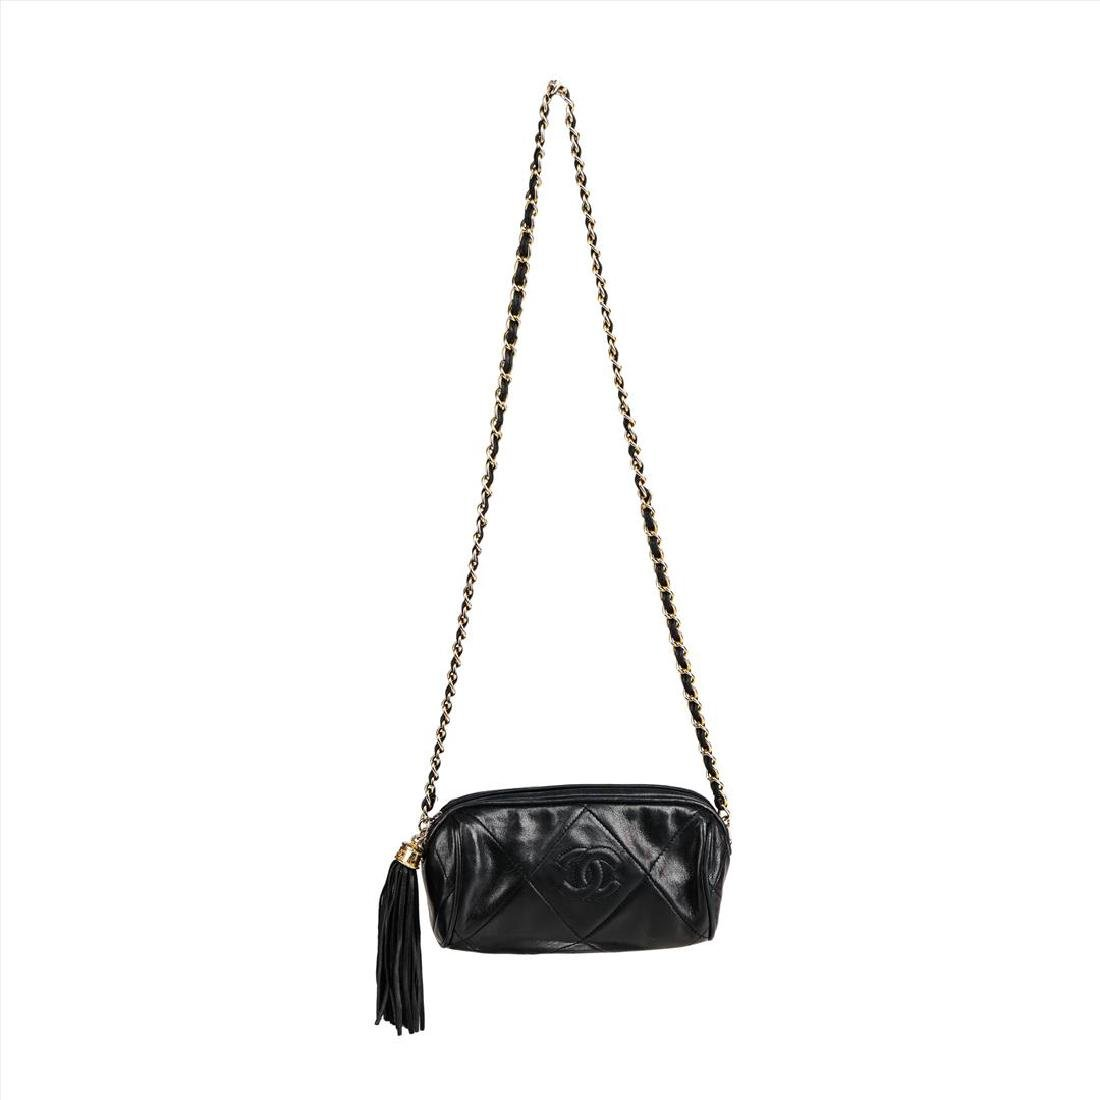 Vintage Chanel Crossbody Evening Bag